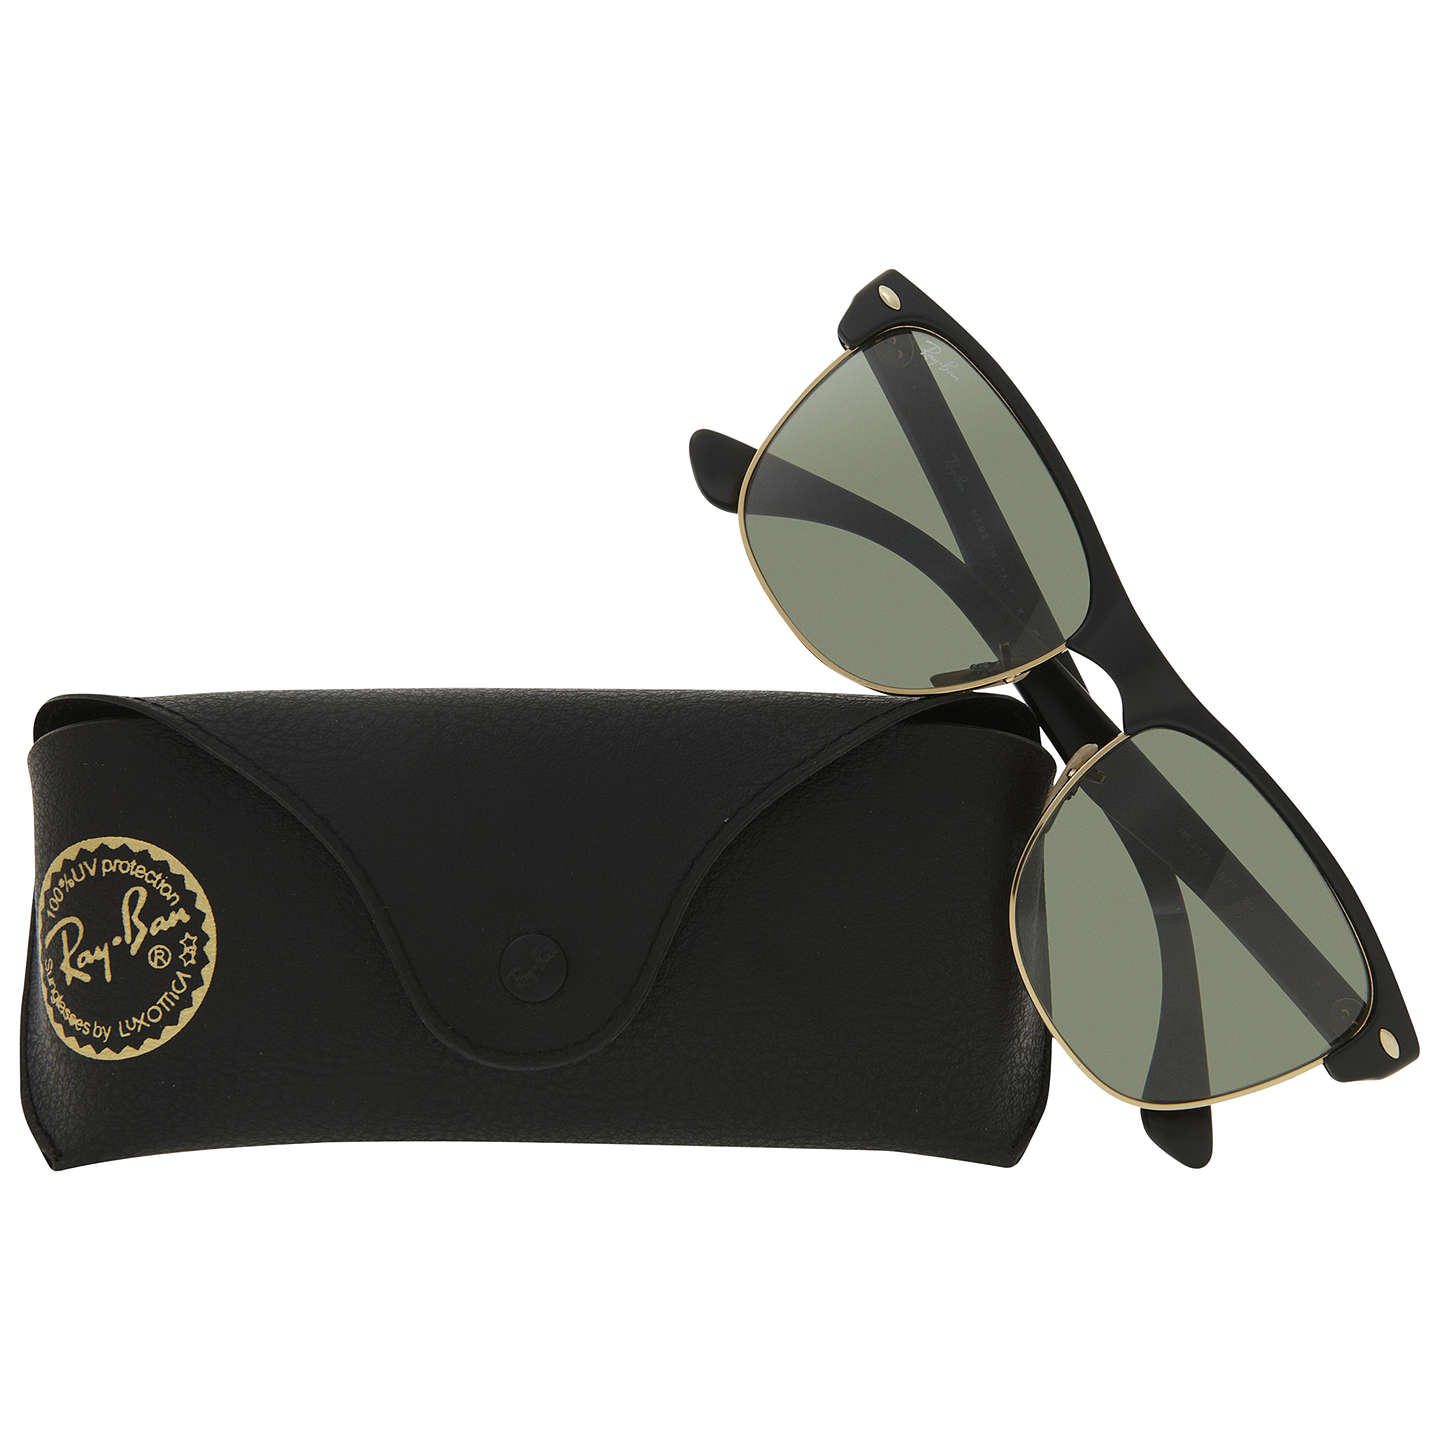 BuyRay-Ban RB4175 Oversized Clubmaster Sunglasses, Black Online at johnlewis.com